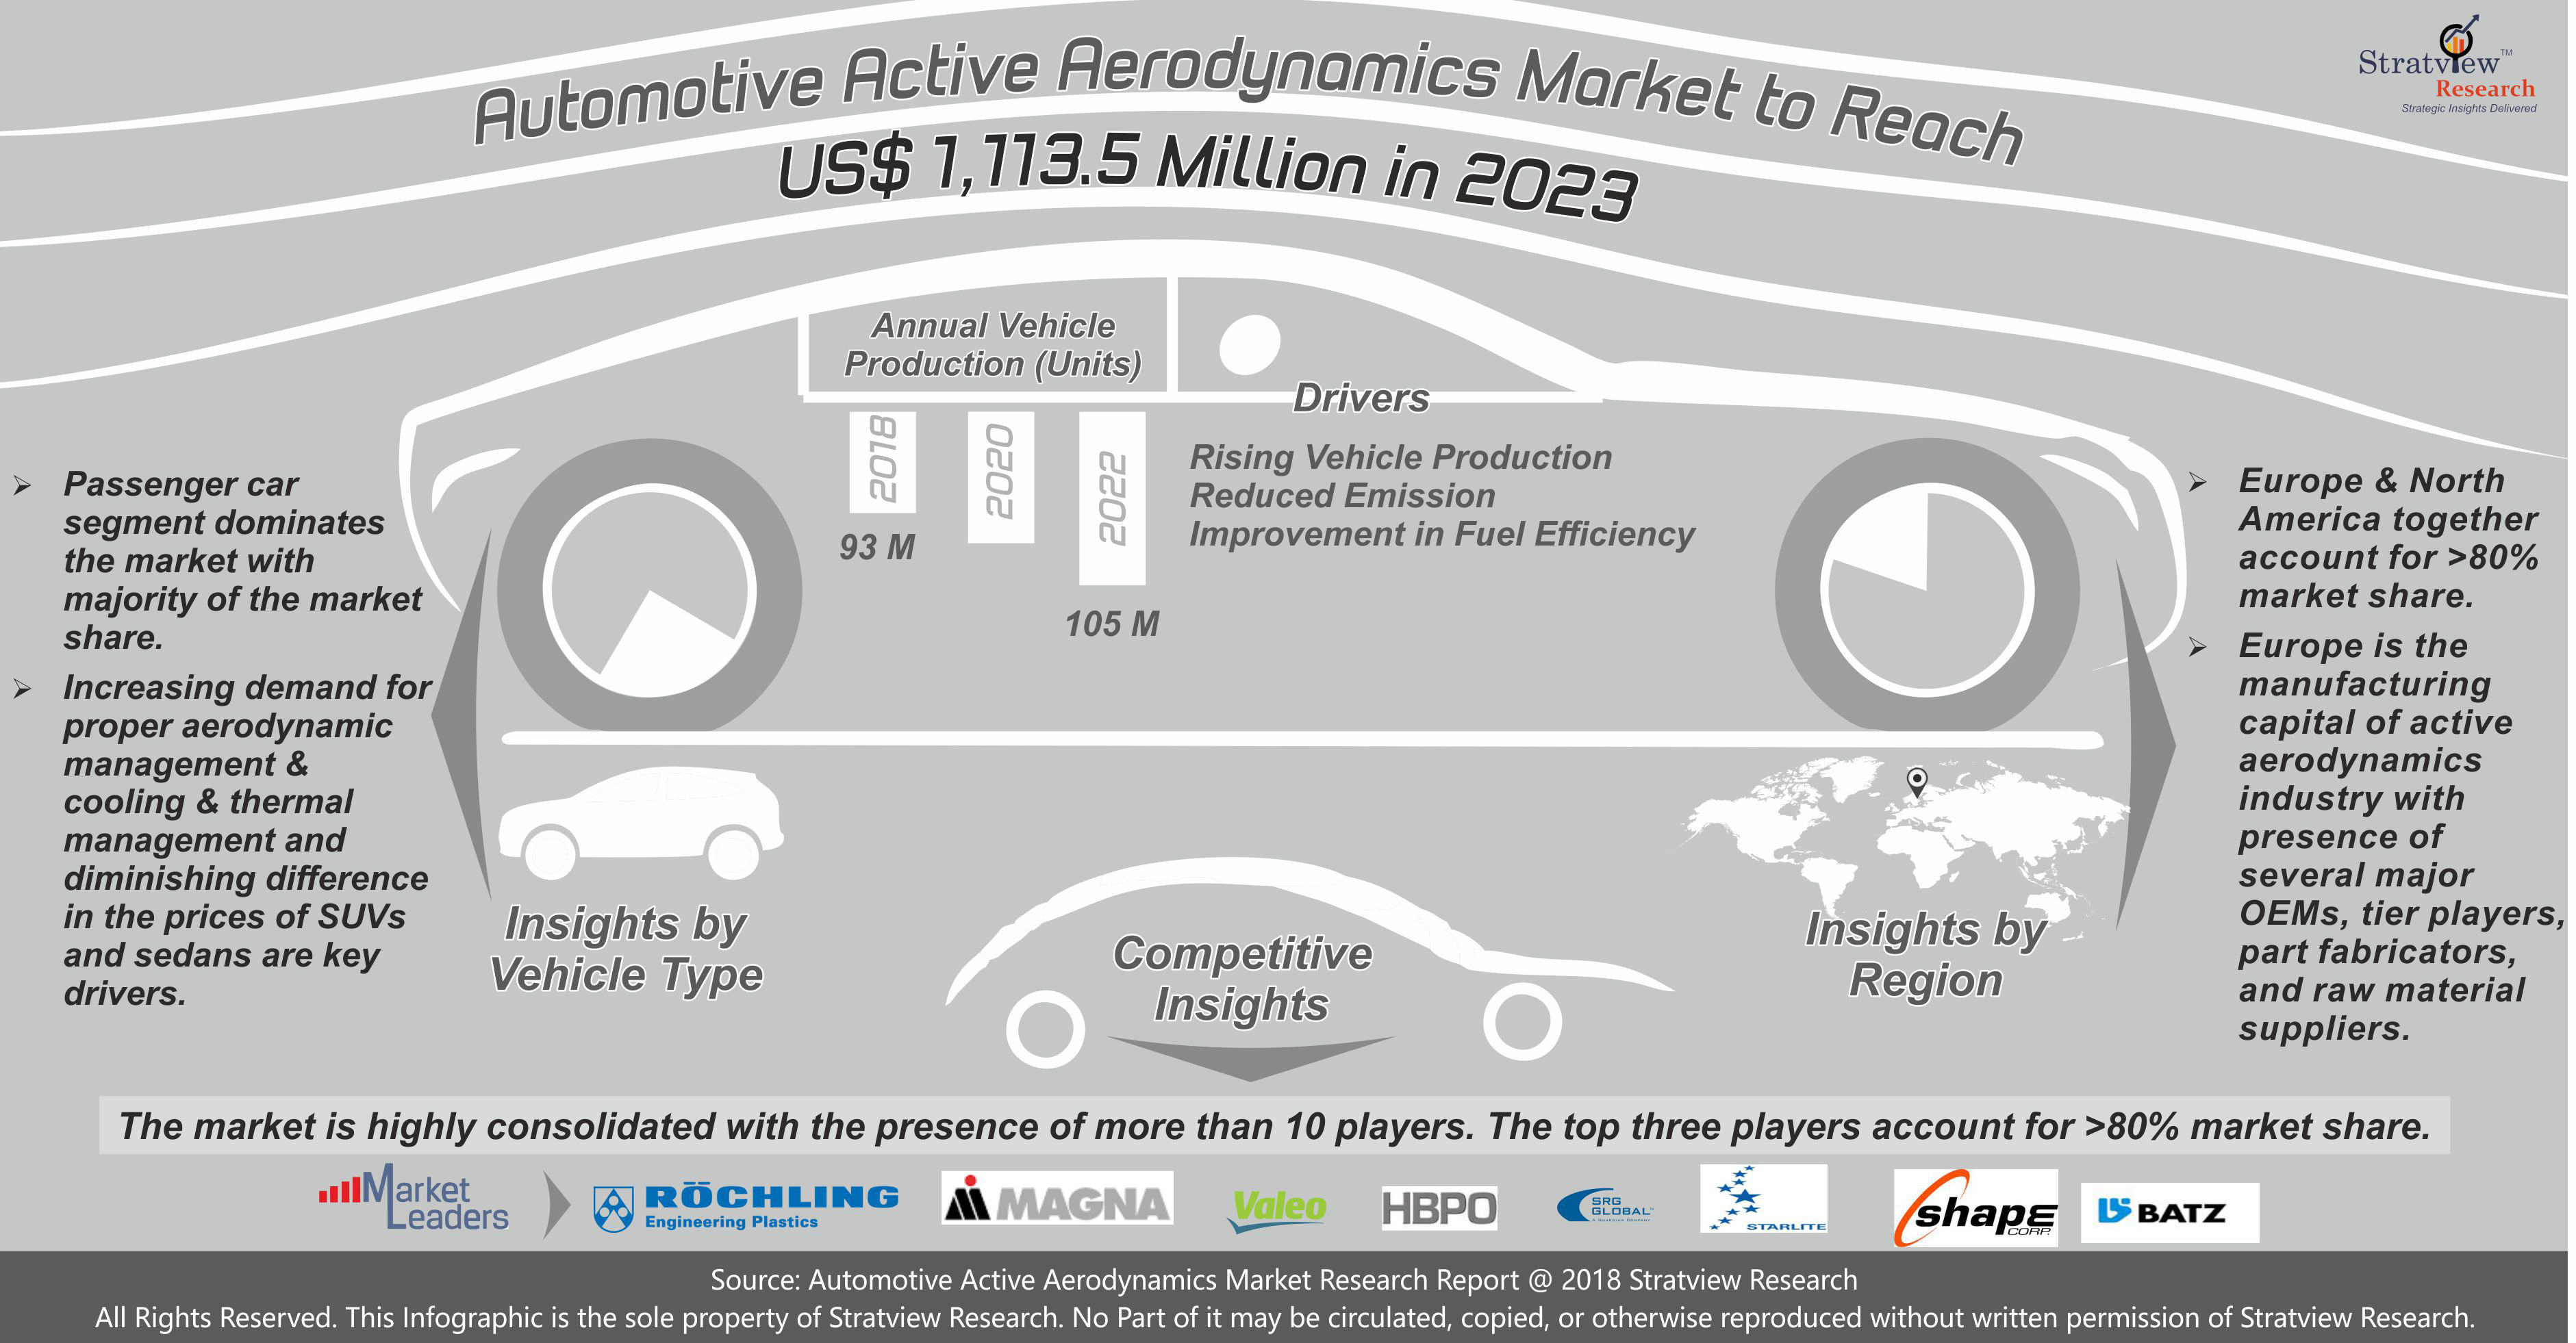 Automotive Active Aerodynamics Market